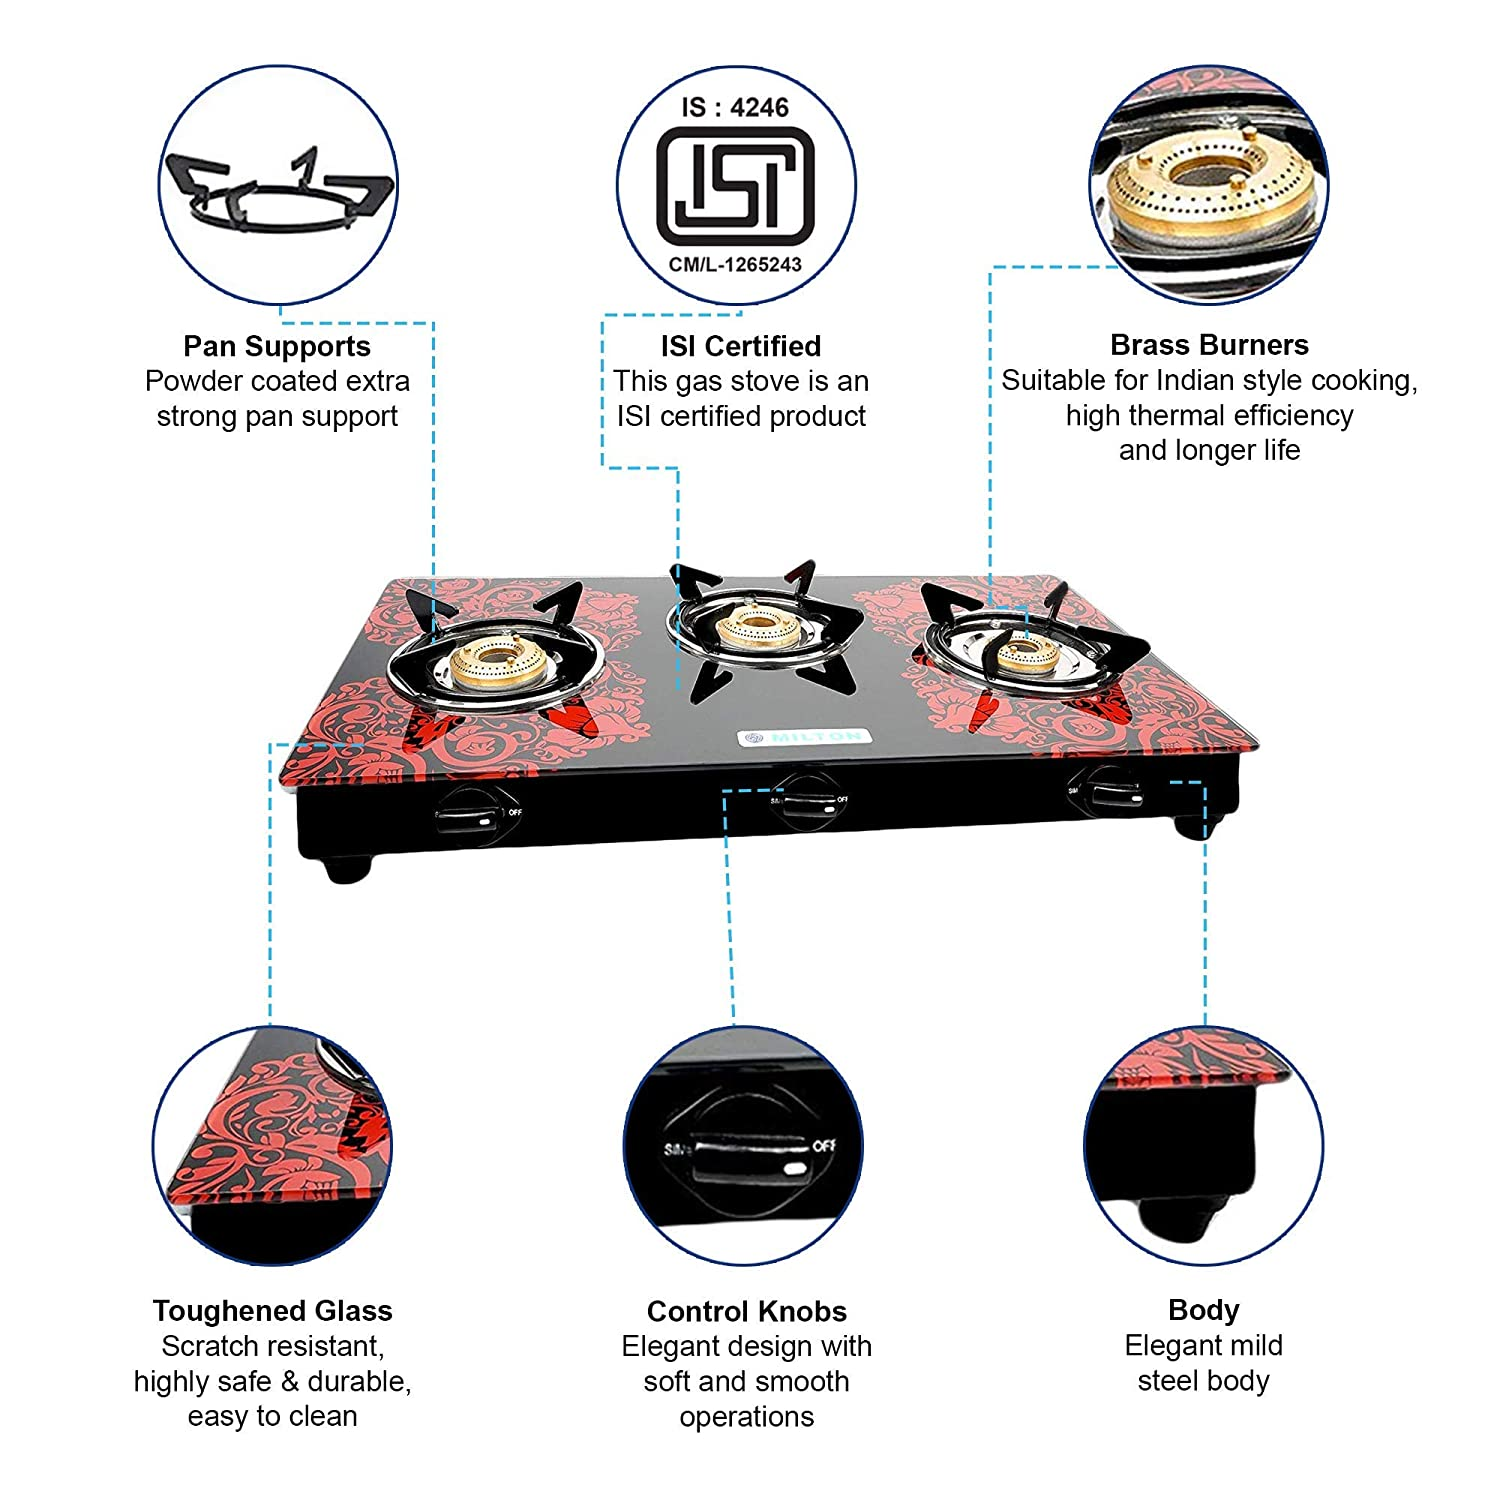 Best 3 Burner Gas Stove under 5000 in India